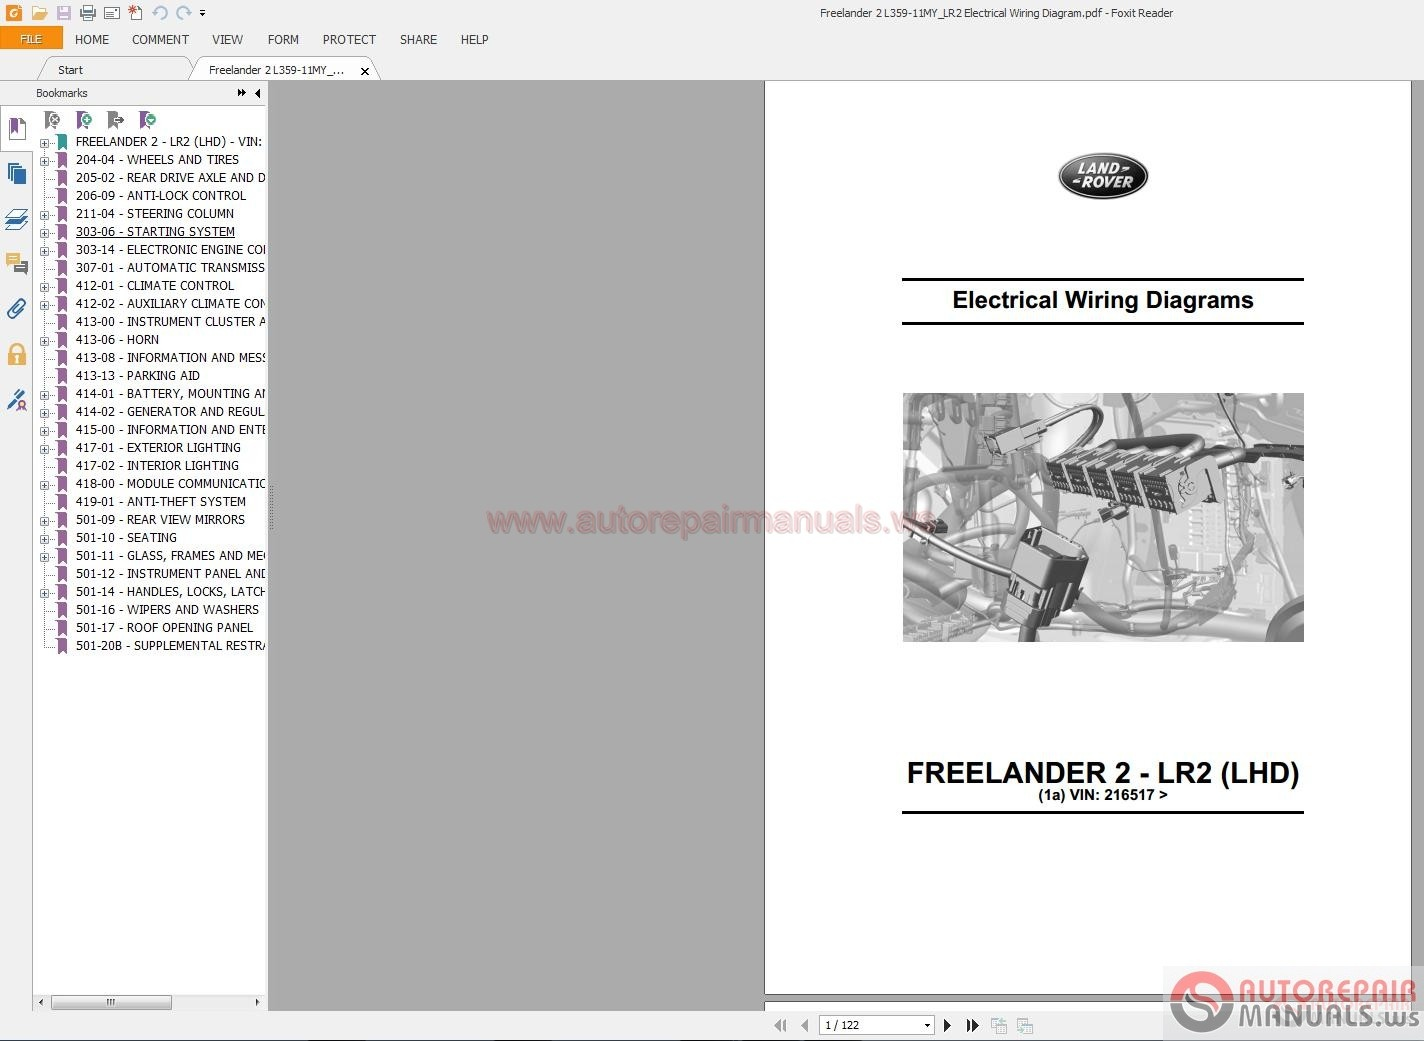 Land Rover Series 1 Parts Manual Pdf Today Guide Trends Iii Wiring Freelander 2 L359 11my Lr2 Electrical Defender Model